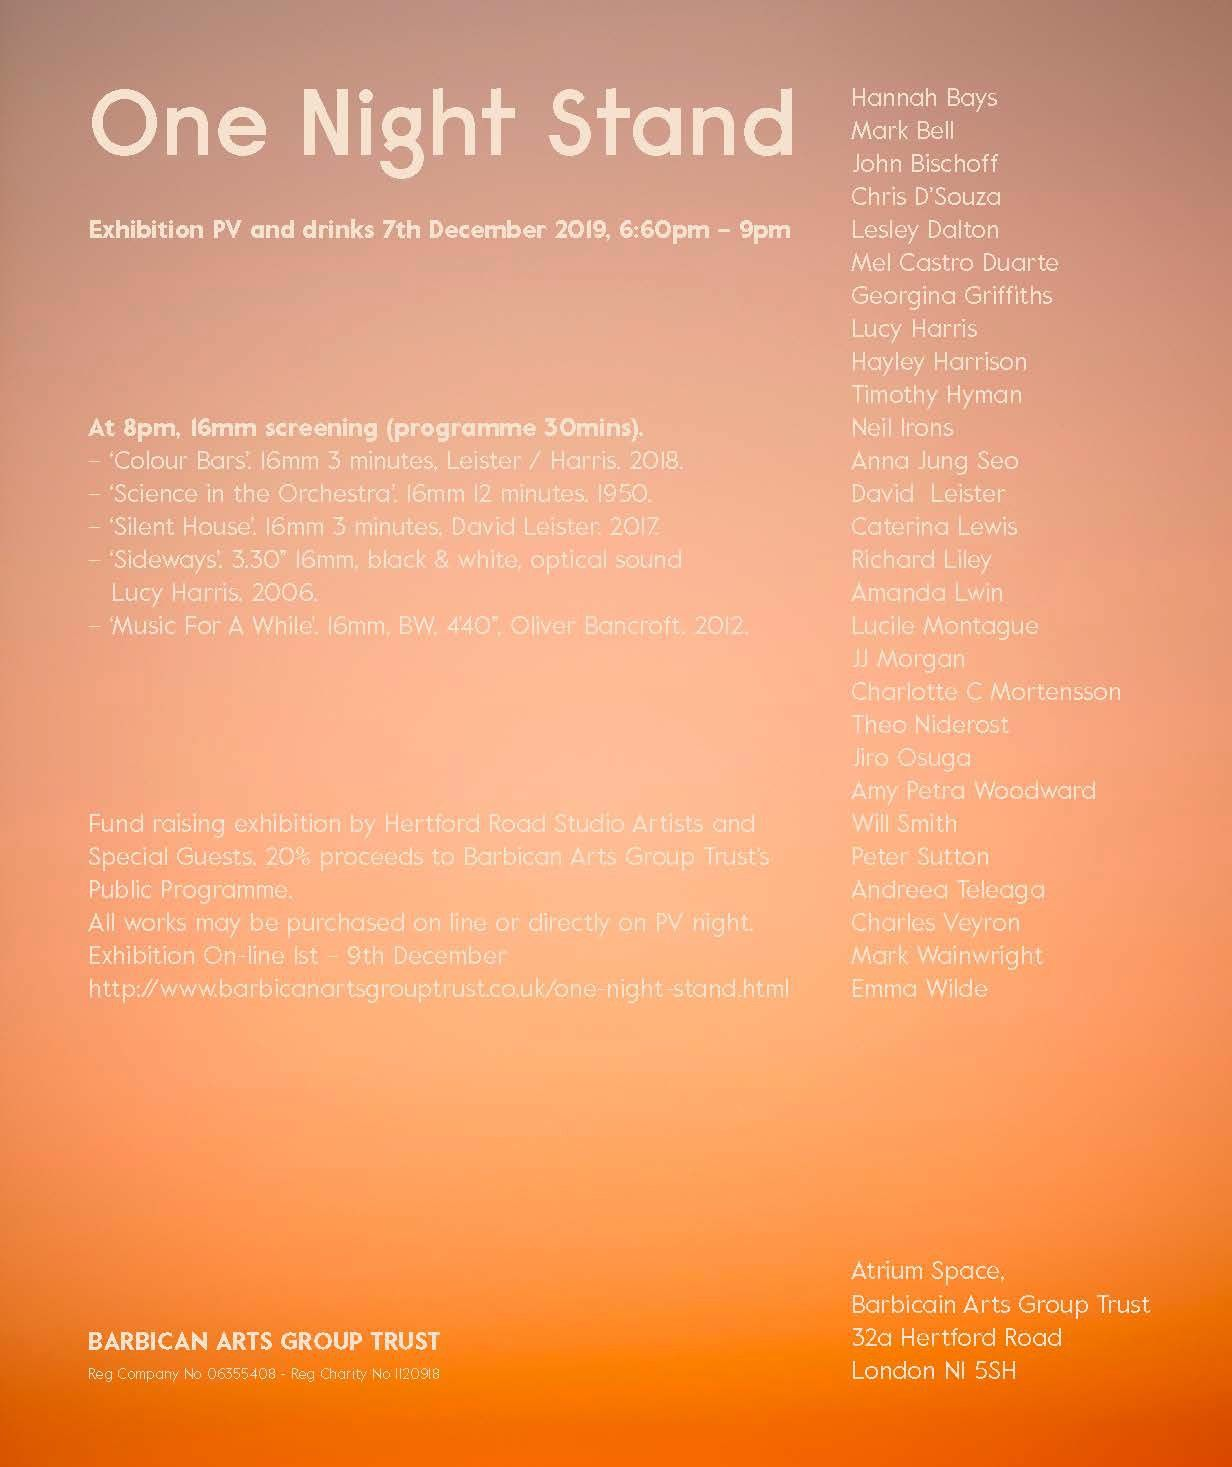 one night stand sites uk